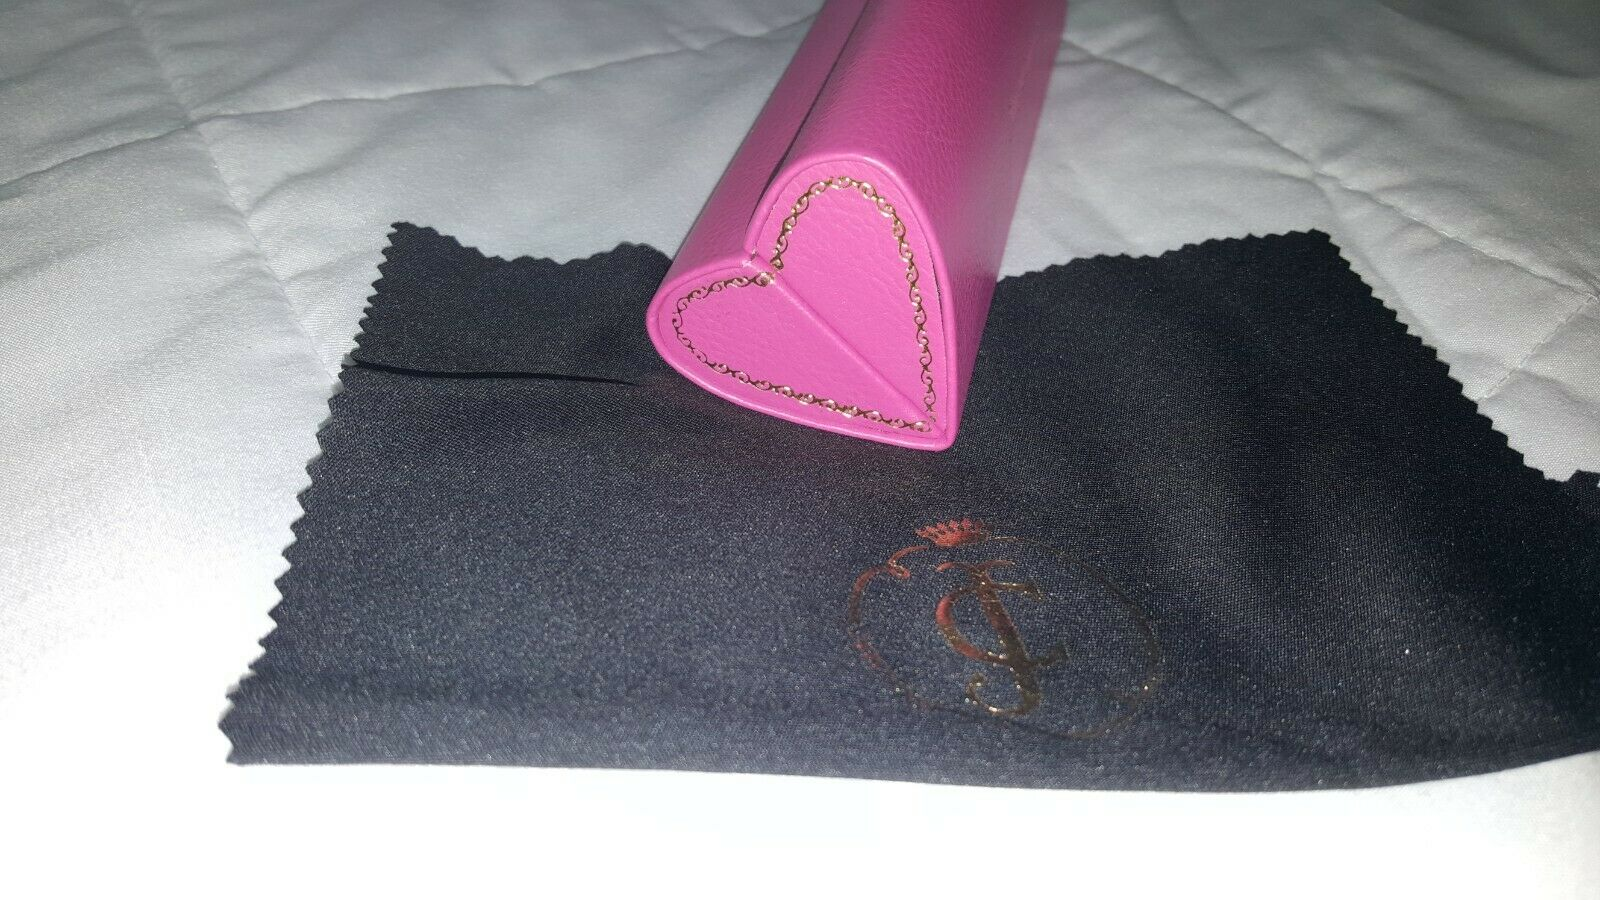 Juicy Couture pink heart shape eyeglass case great for petite or kid size frames